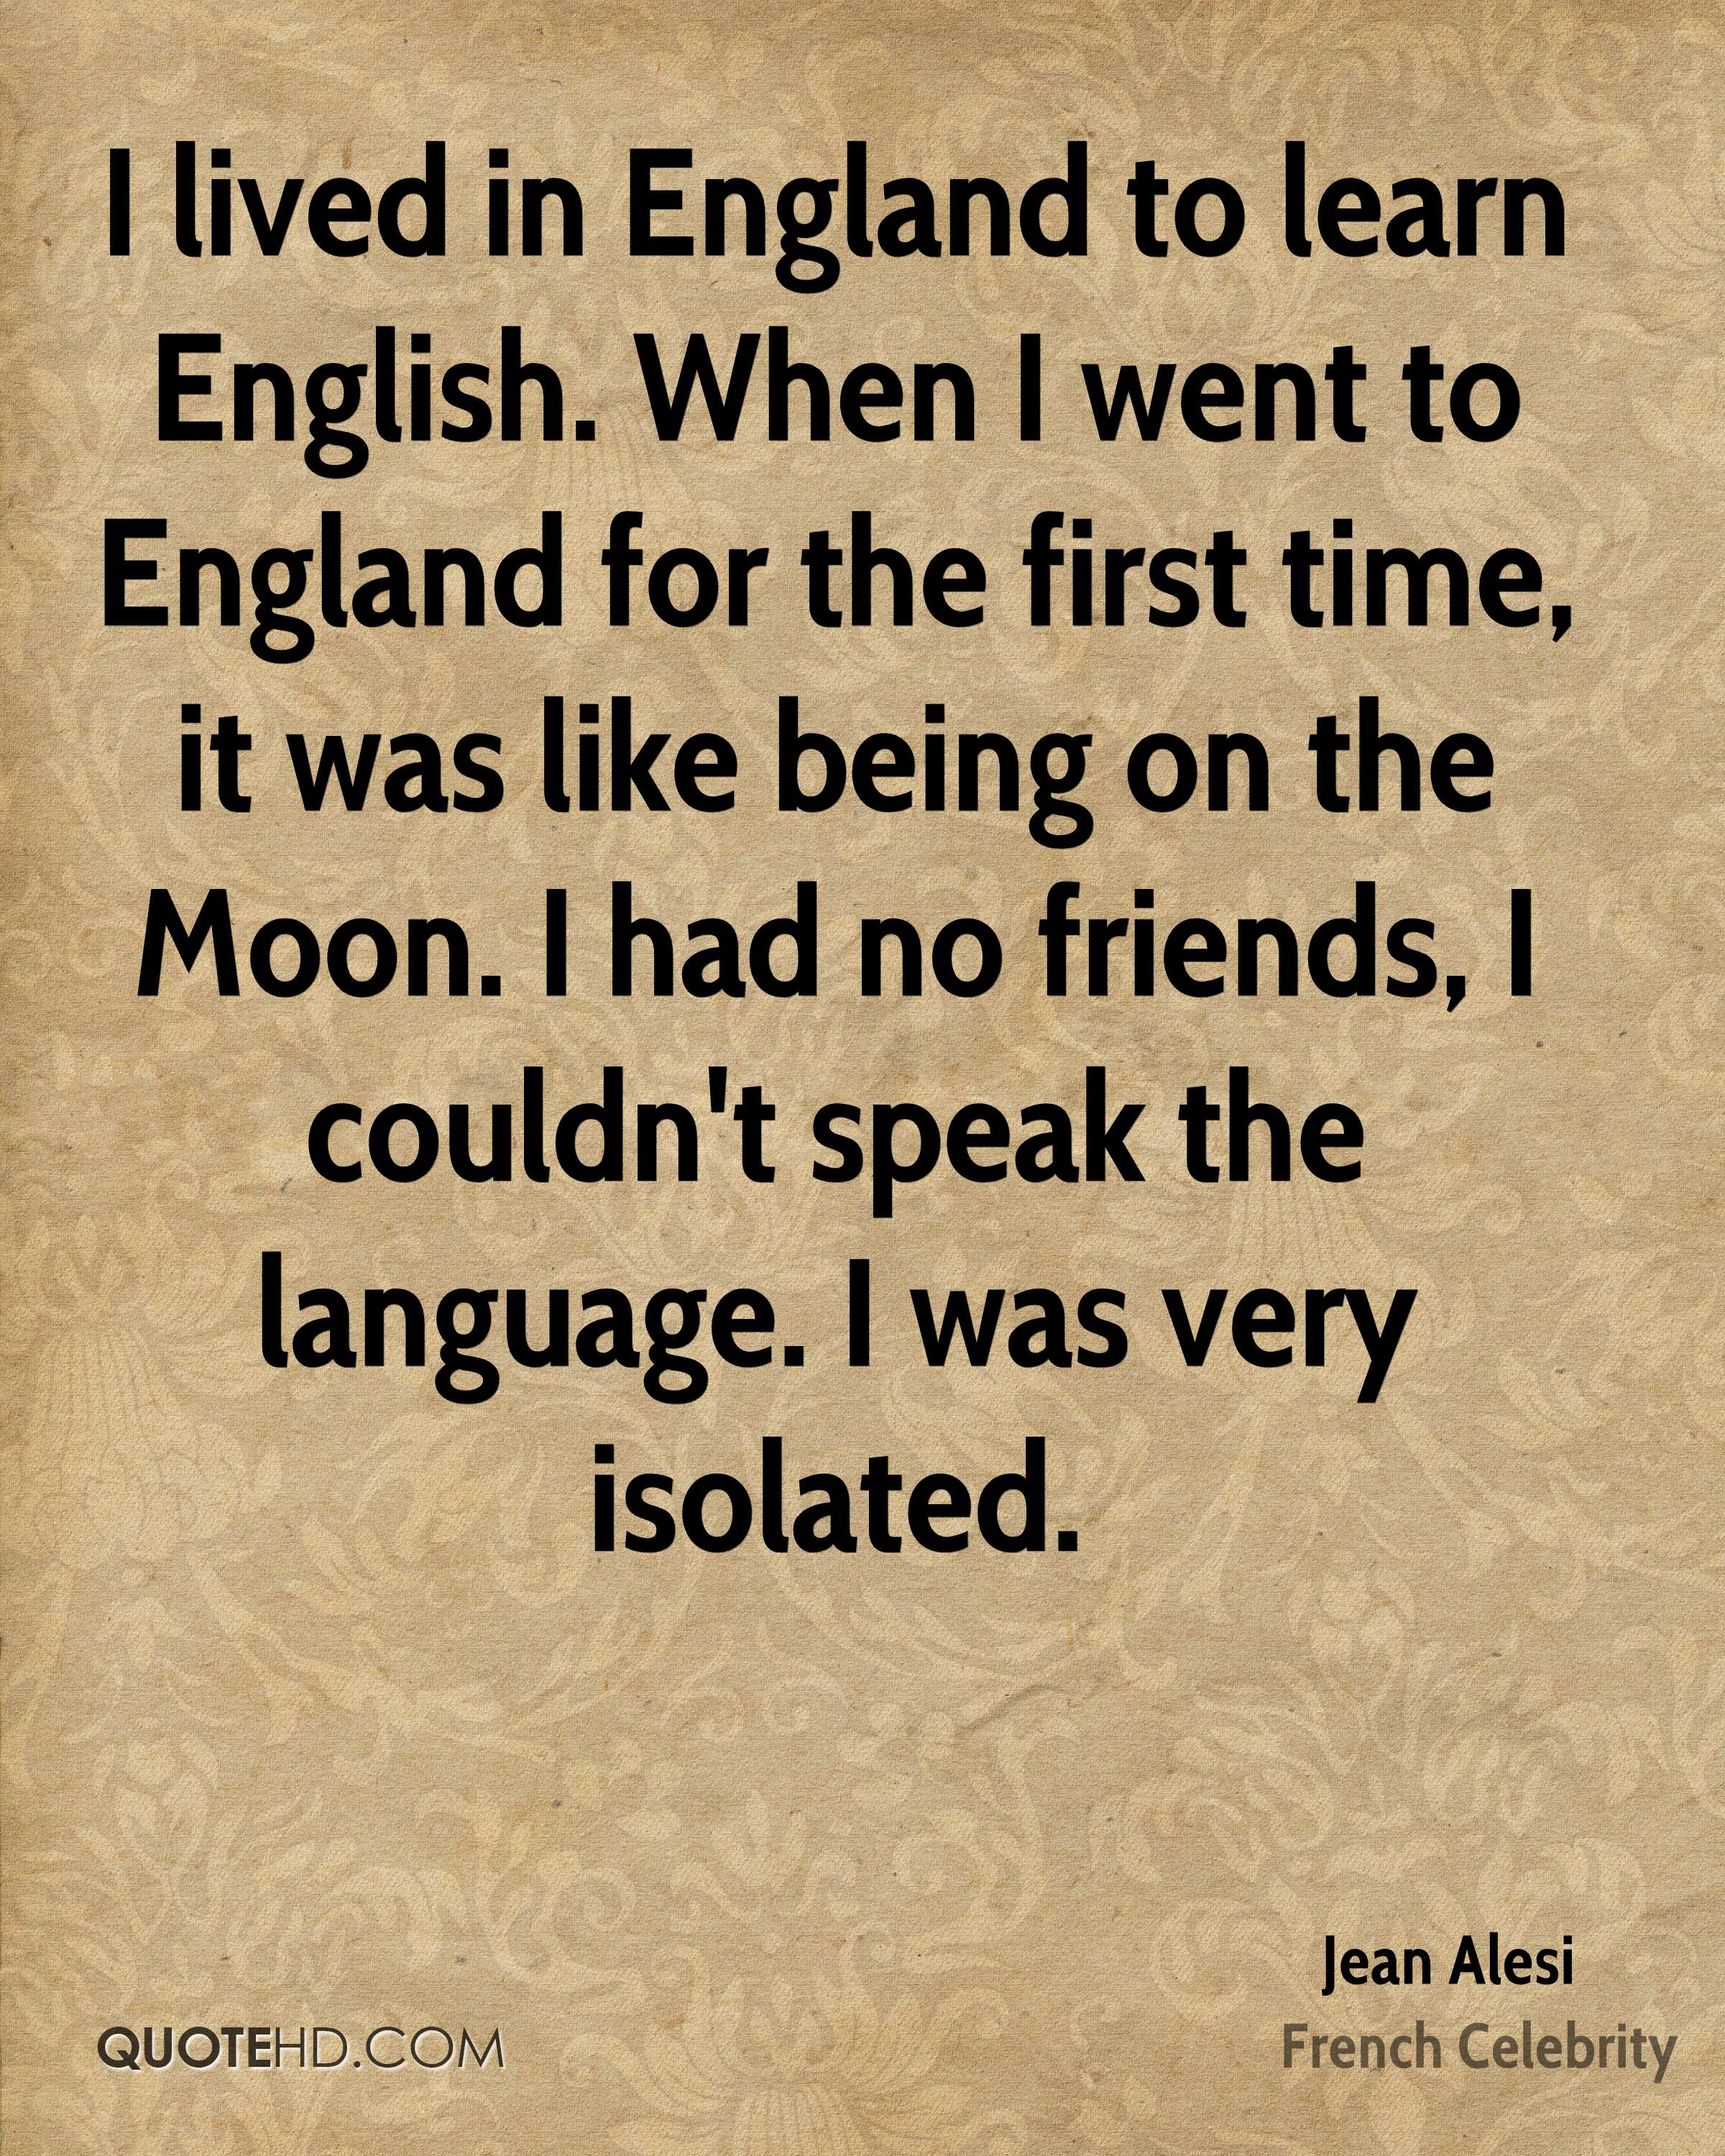 I lived in England to learn English. When I went to England for the first time, it was like being on the Moon. I had no friends, I couldn't speak the language. I was very isolated.